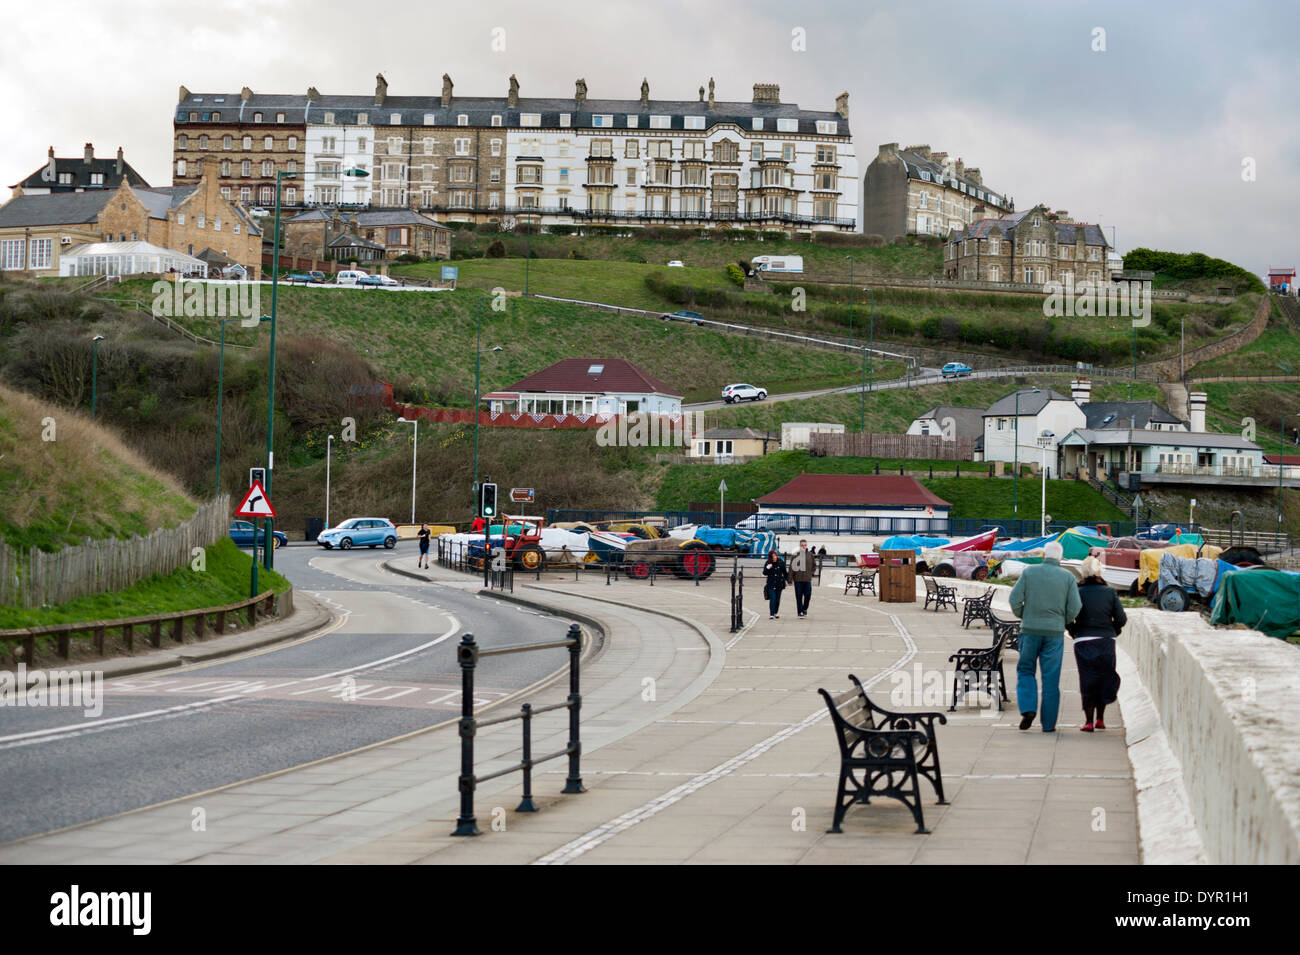 The seaside resort of Saltburn-by-the-Sea, Redcar and Cleveland, UK - Stock Image